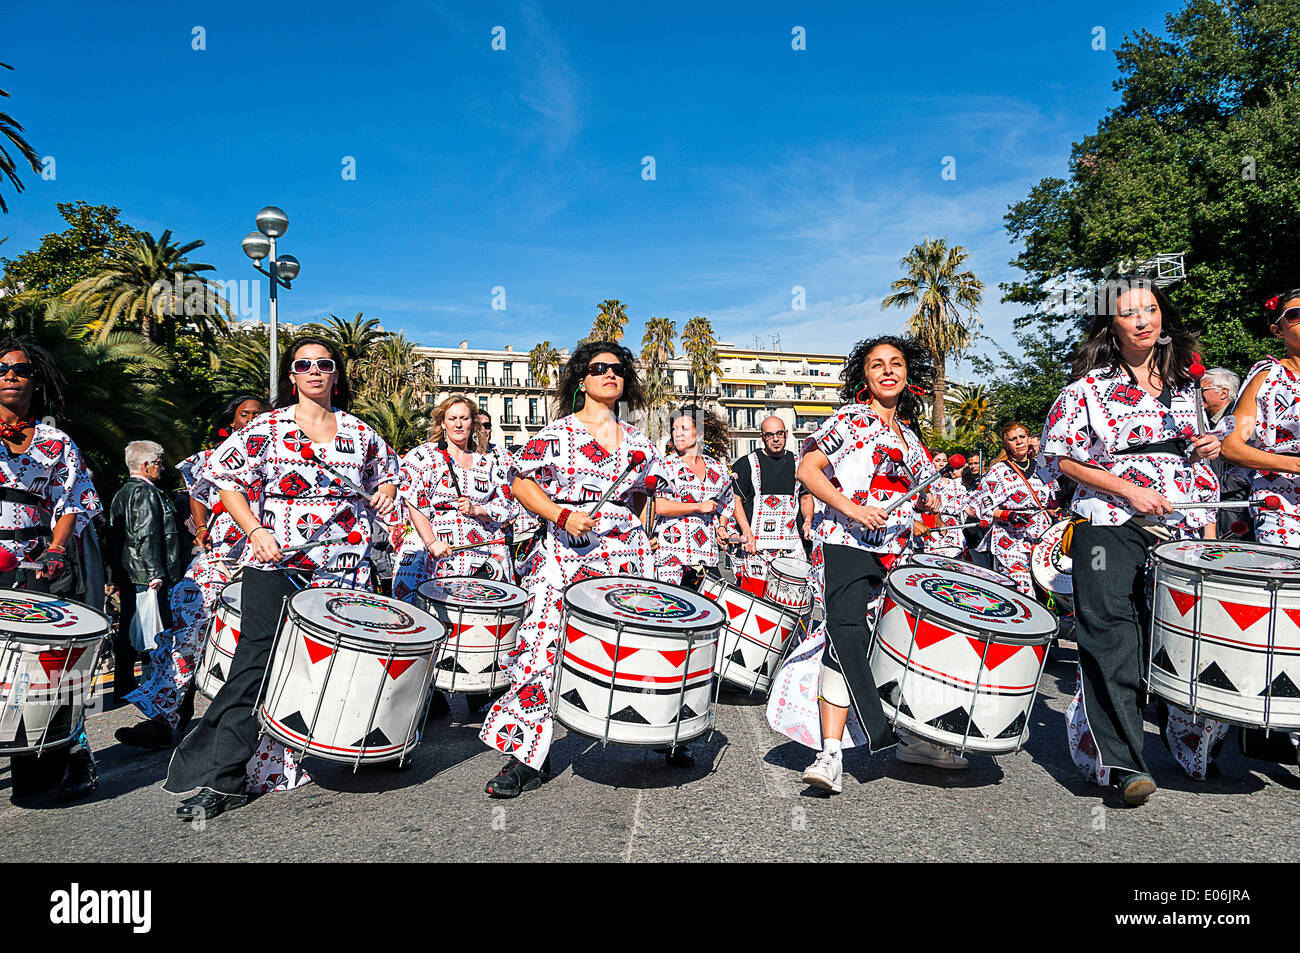 Europe, France, Alpes-Maritimes, Nice. Carnival. Stock Photo